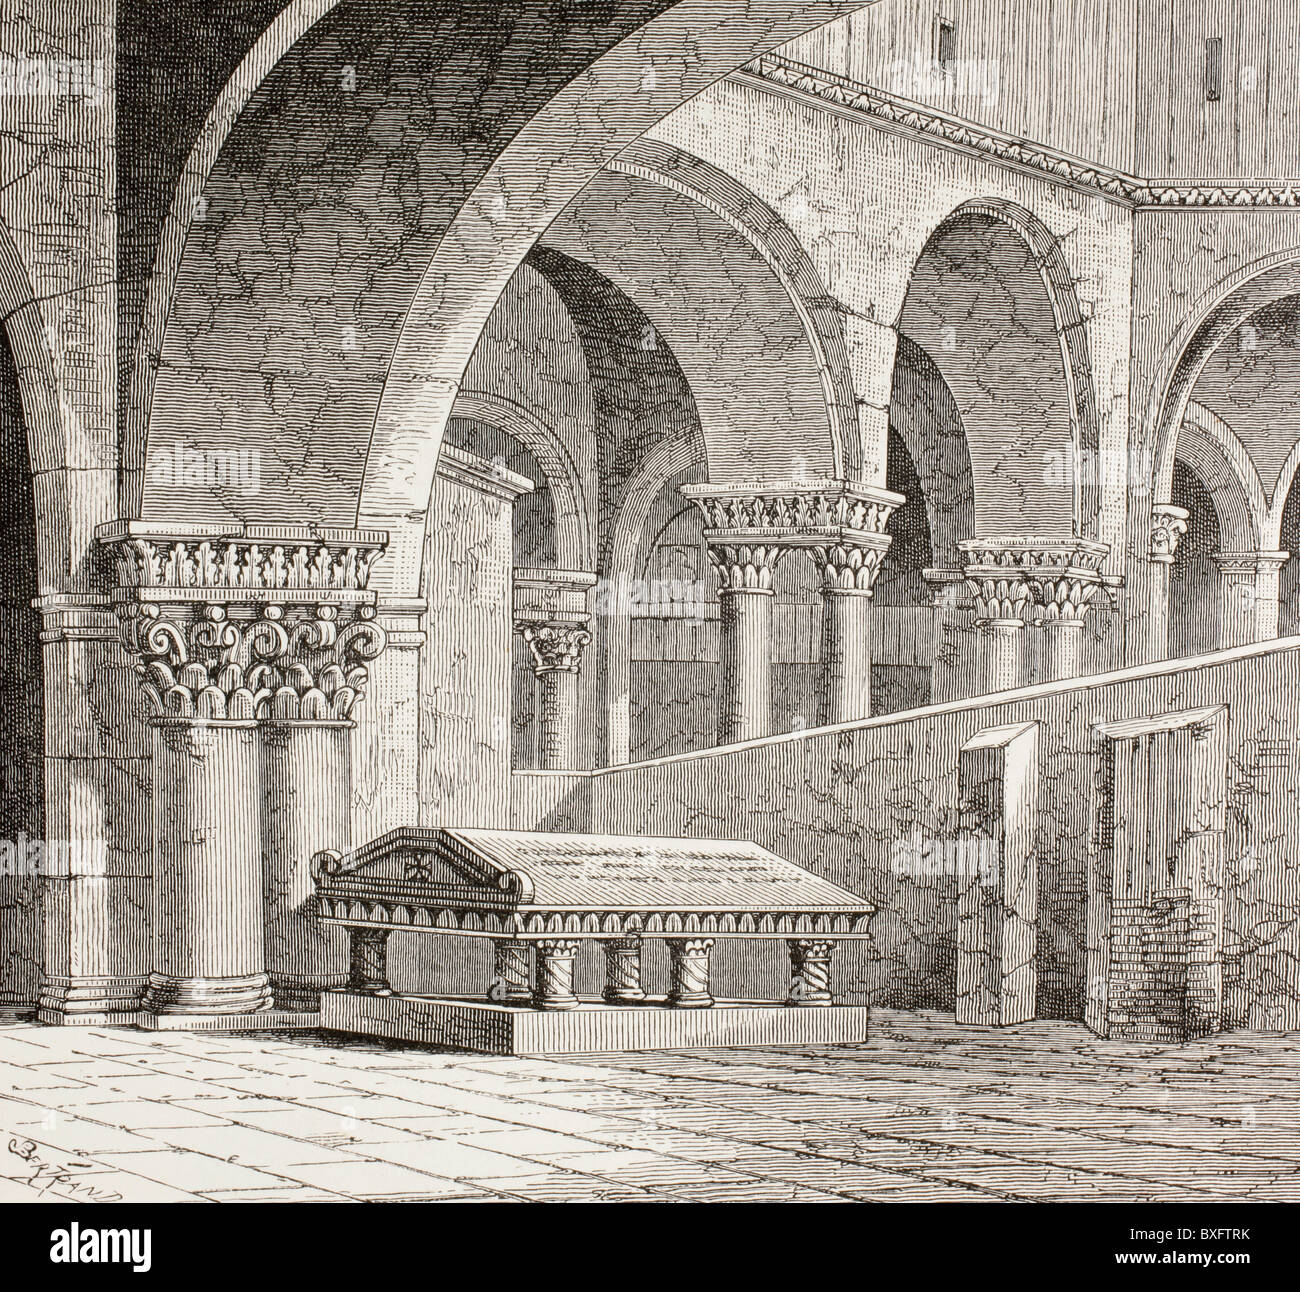 Tomb of Godfrey de Boullon, c 1060 - 1100, as it existed in the Church of the Holy Sepulchre, Jerusalem. Tomb is - Stock Image